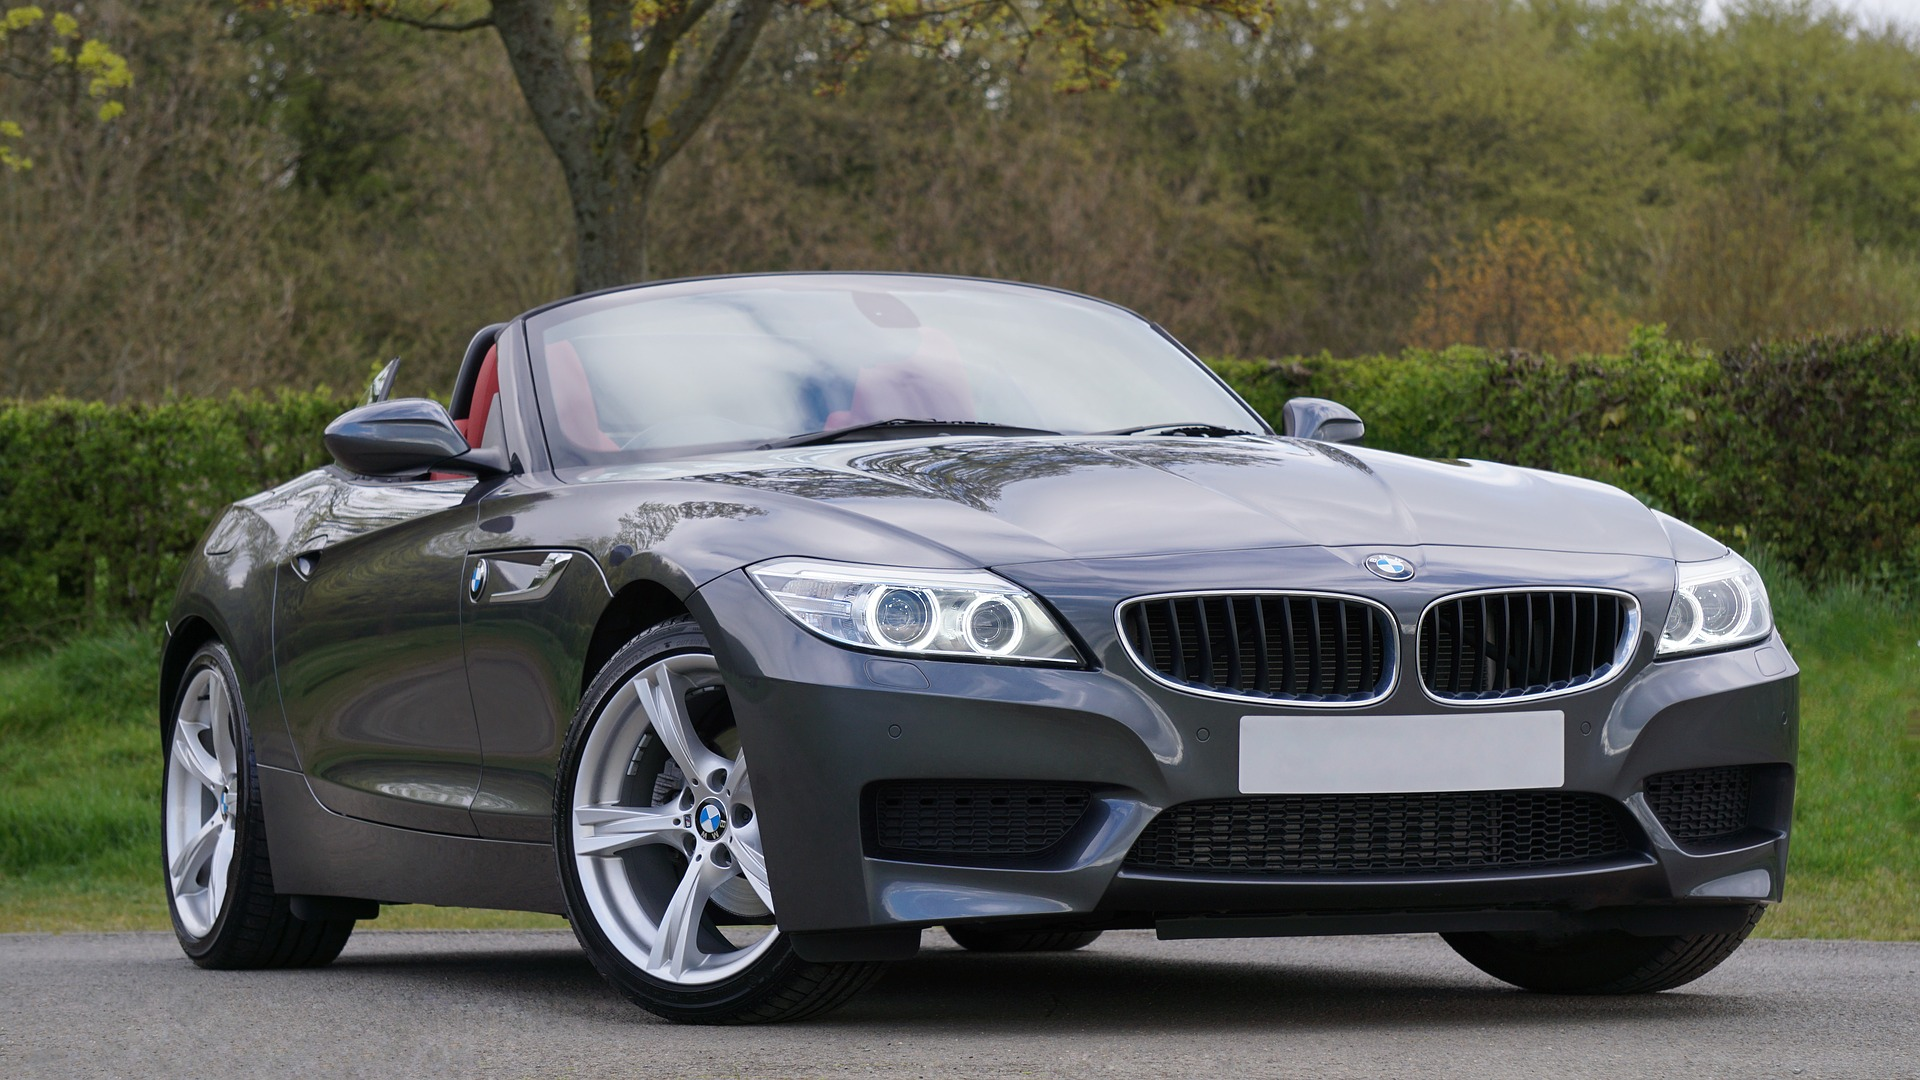 Tips on Choosing the Right Luxury Car